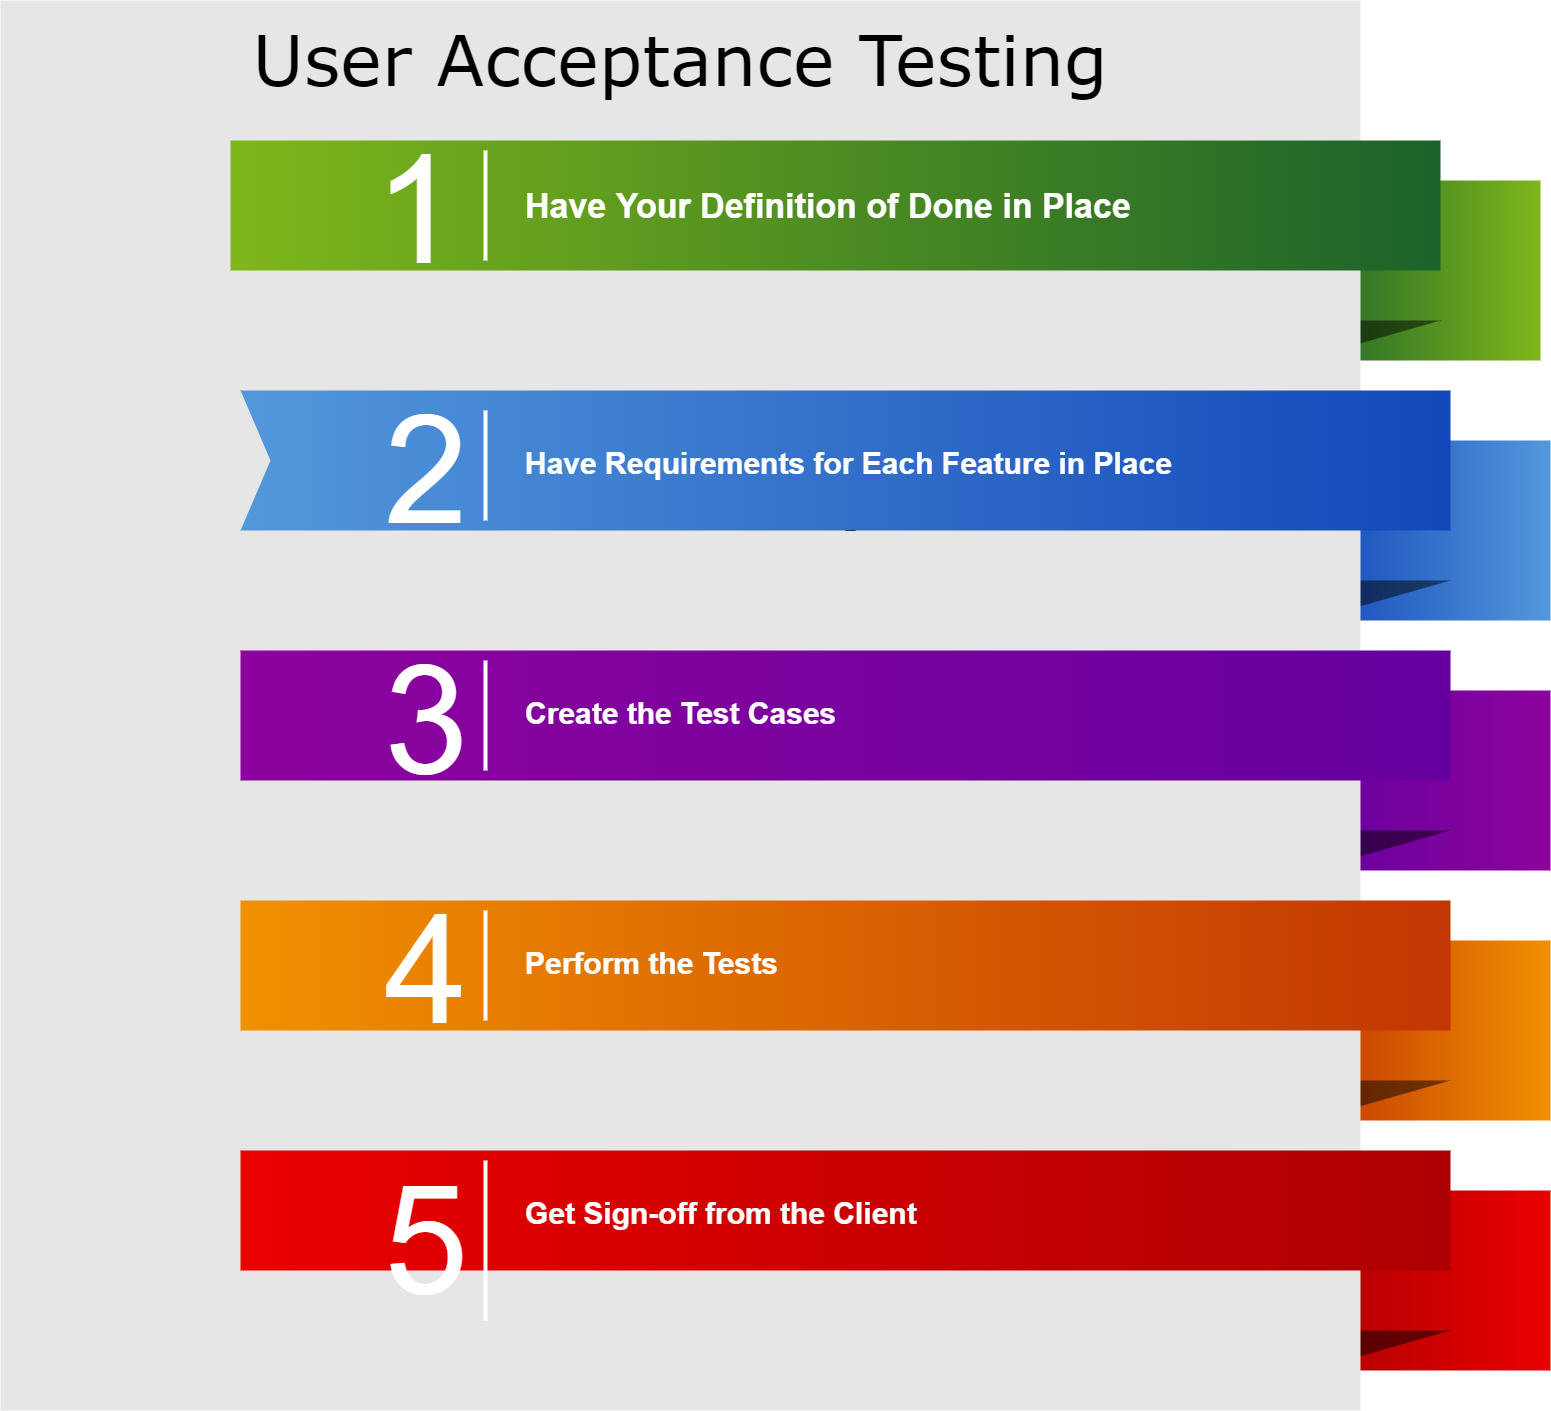 User Acceptance Testing Activities